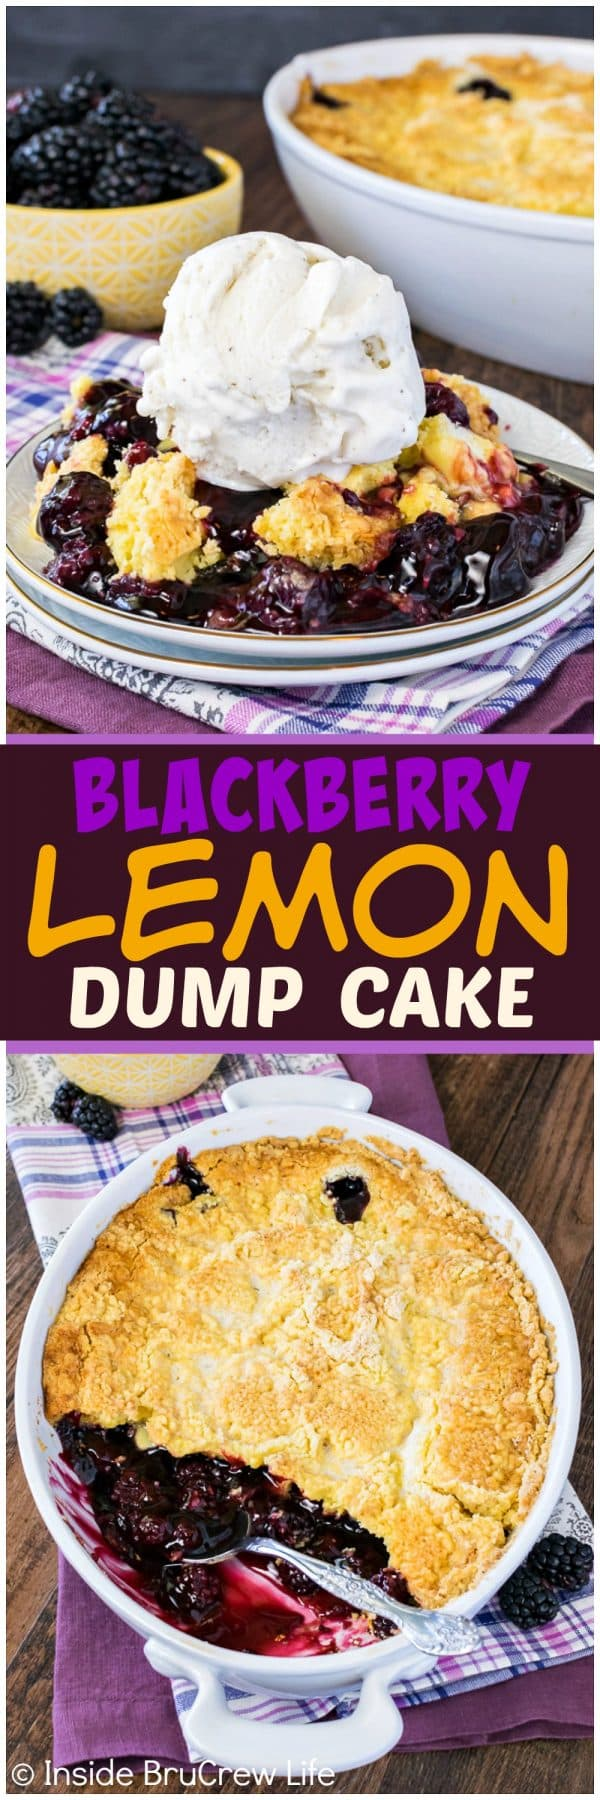 Blackberry Lemon Dump Cake - a crispy lemon topping with gooey blackberry pie filling makes an awesome summer dessert recipe. It's so good with vanilla ice cream!